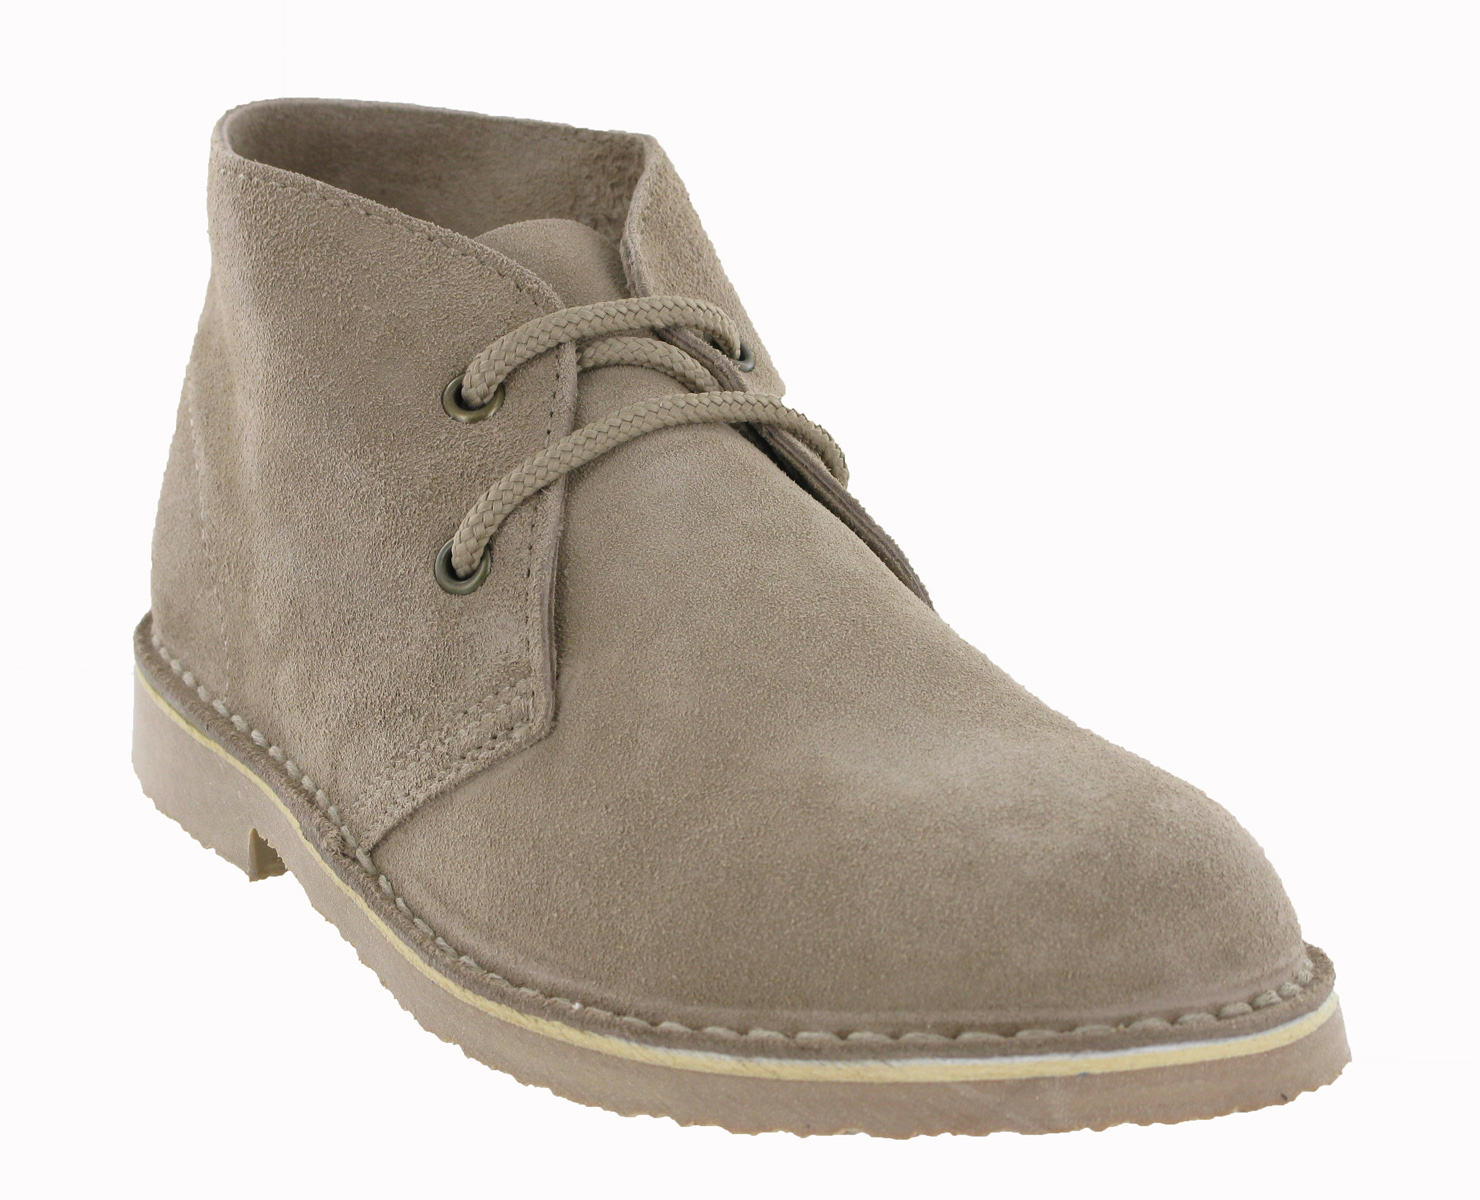 roamers classic suede desert boots real leather womens